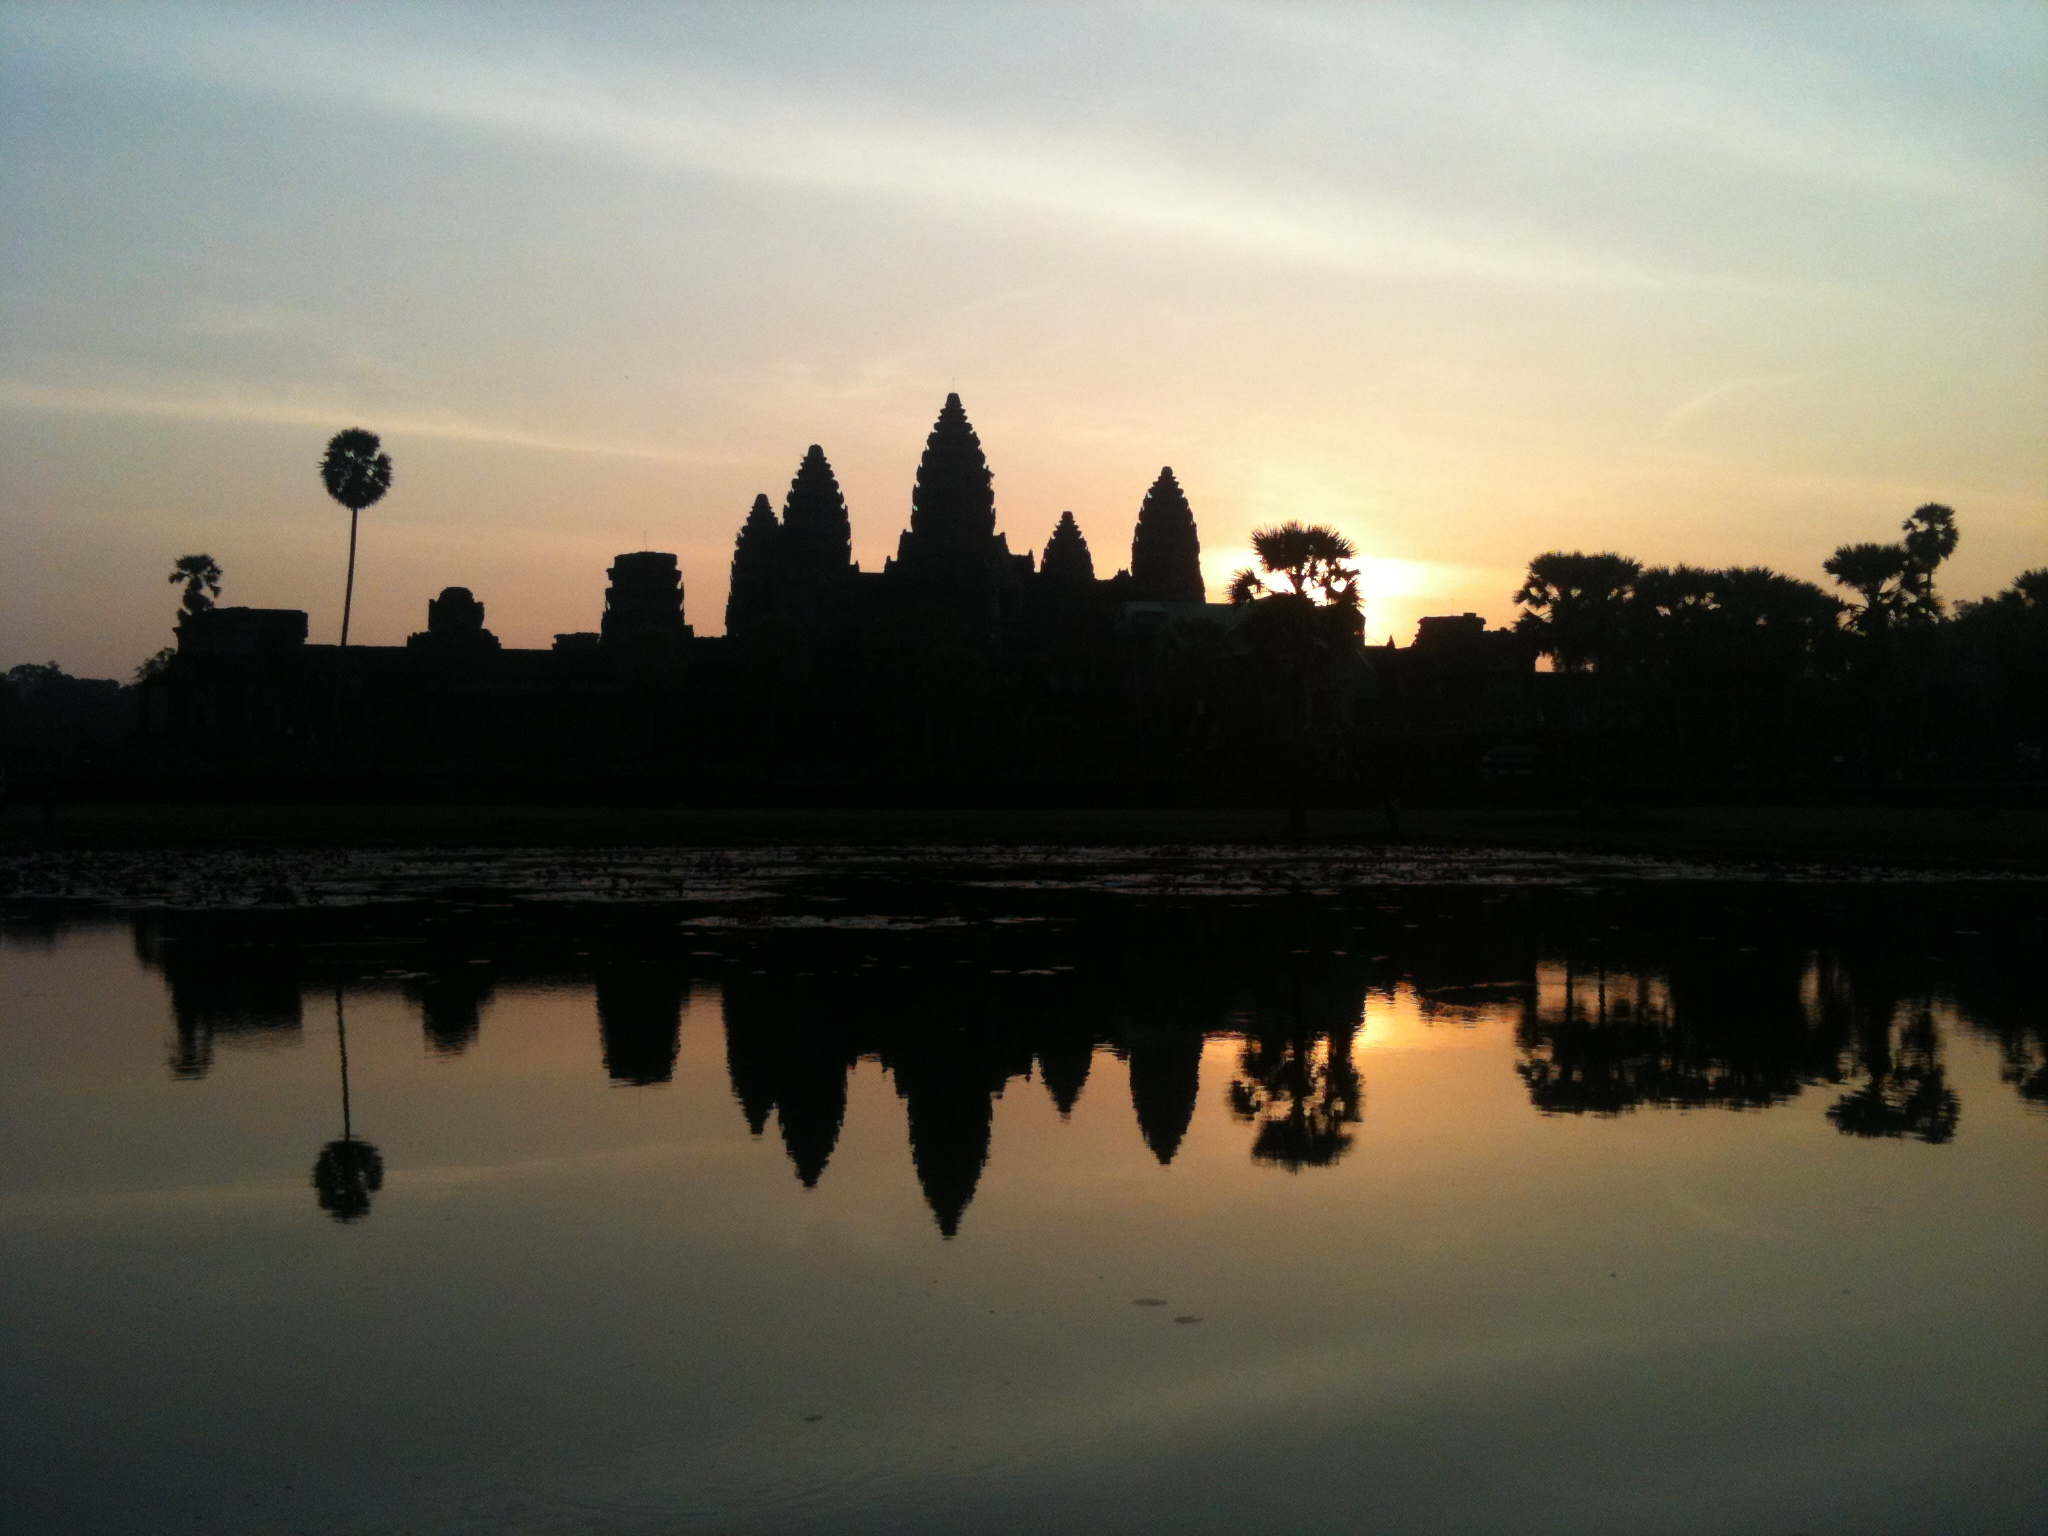 Yeah, alright, I saw another opportunity for an Angkor Wat sunrise photo there